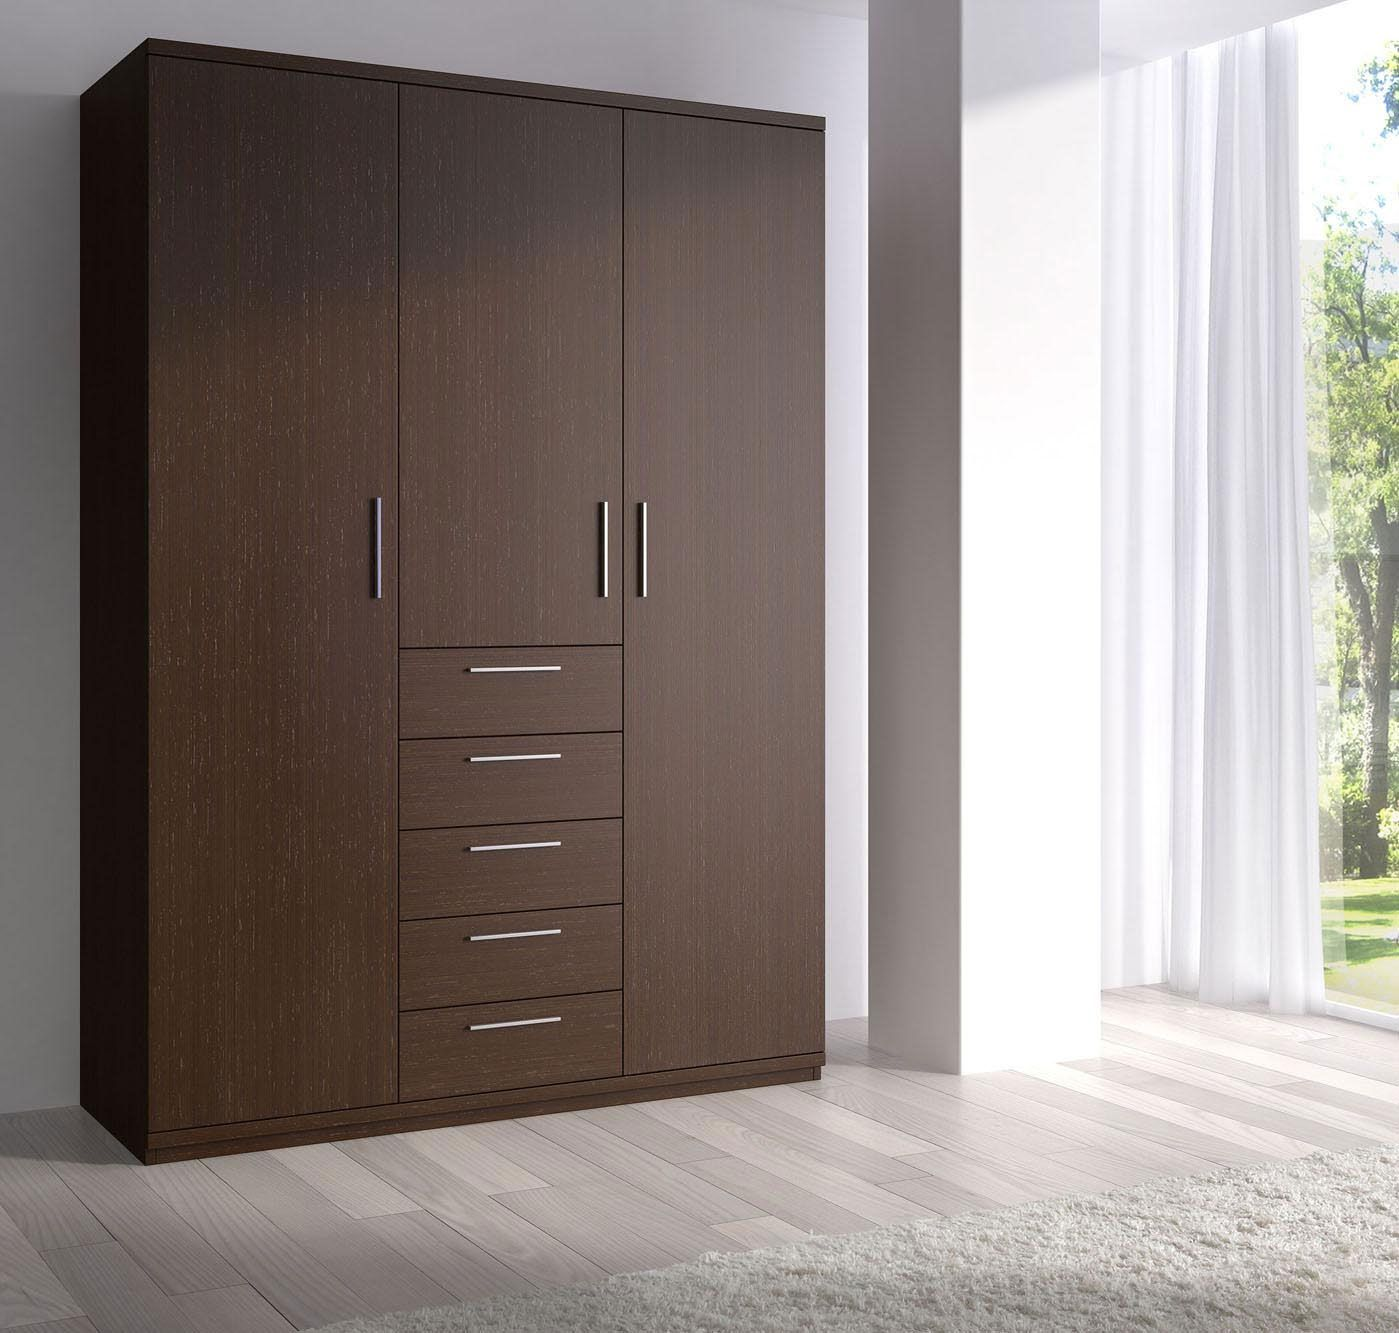 Bedroom Classy Wooden Closet Wardrobe Ideas With Modern Design For Modern Bedroom Cool And